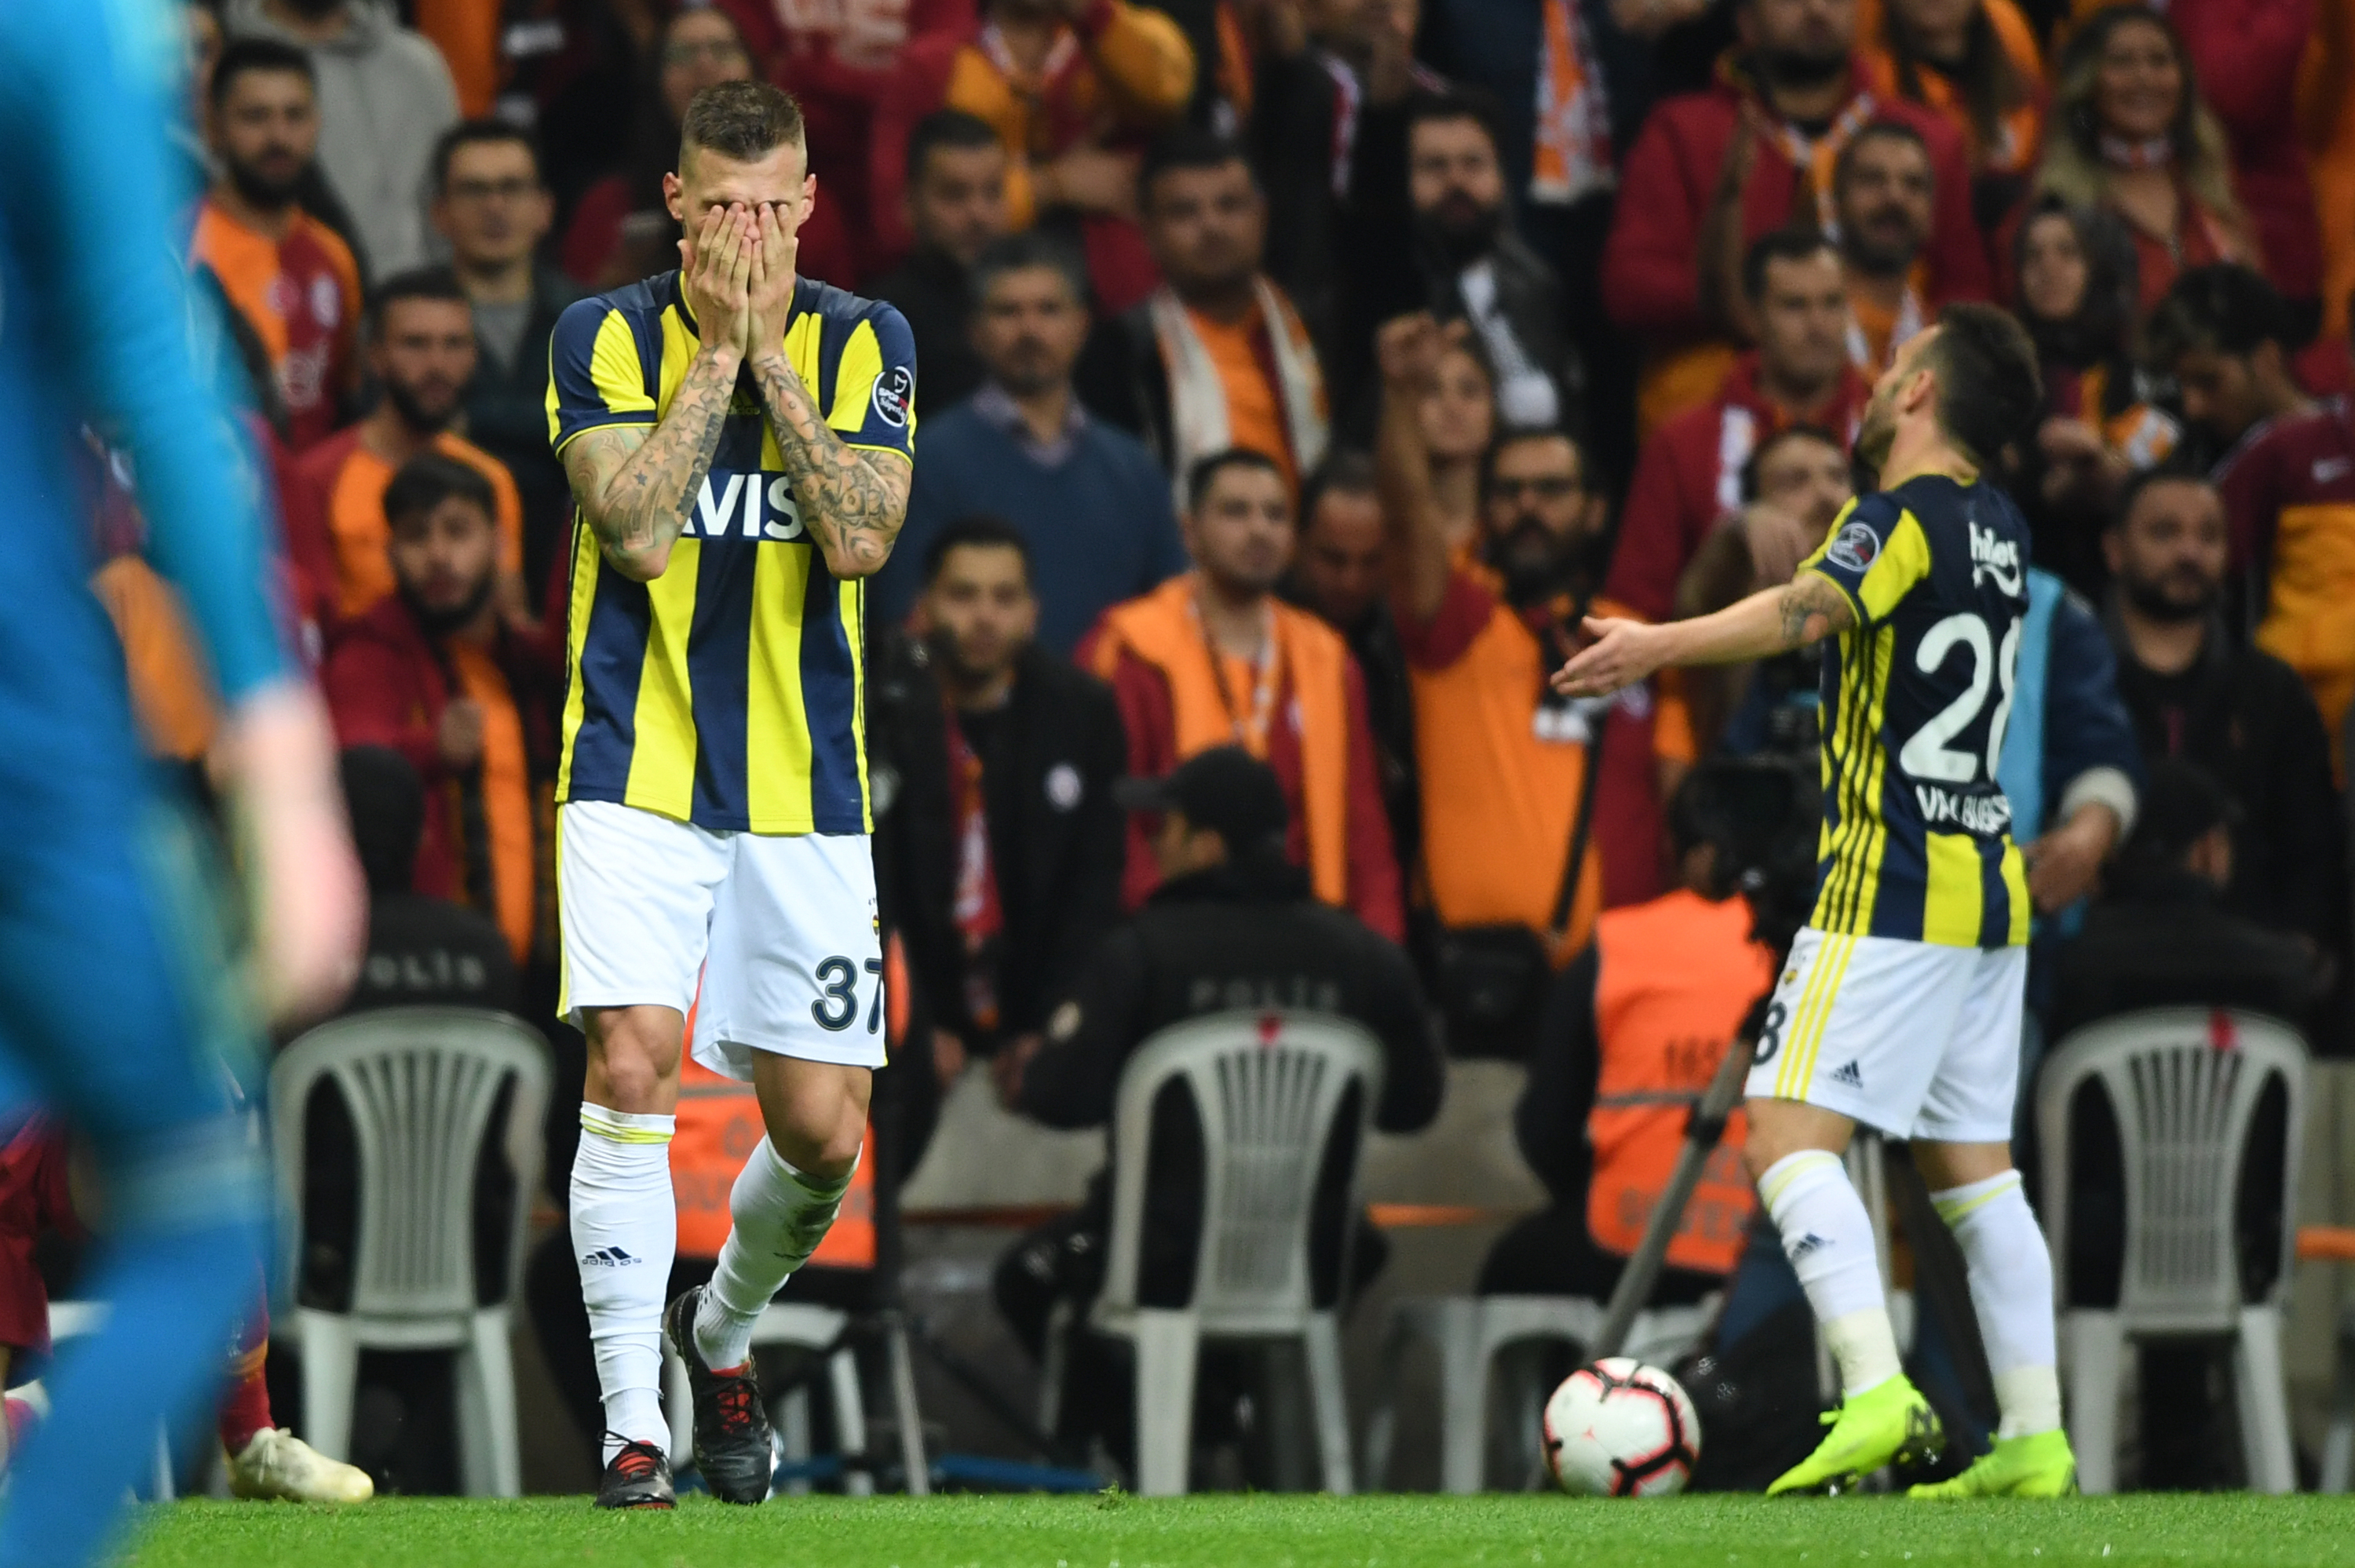 Martin Skrtel Mathieu Valbuena Galatasaray Fenerbahce Turkish Super League 11/02/18